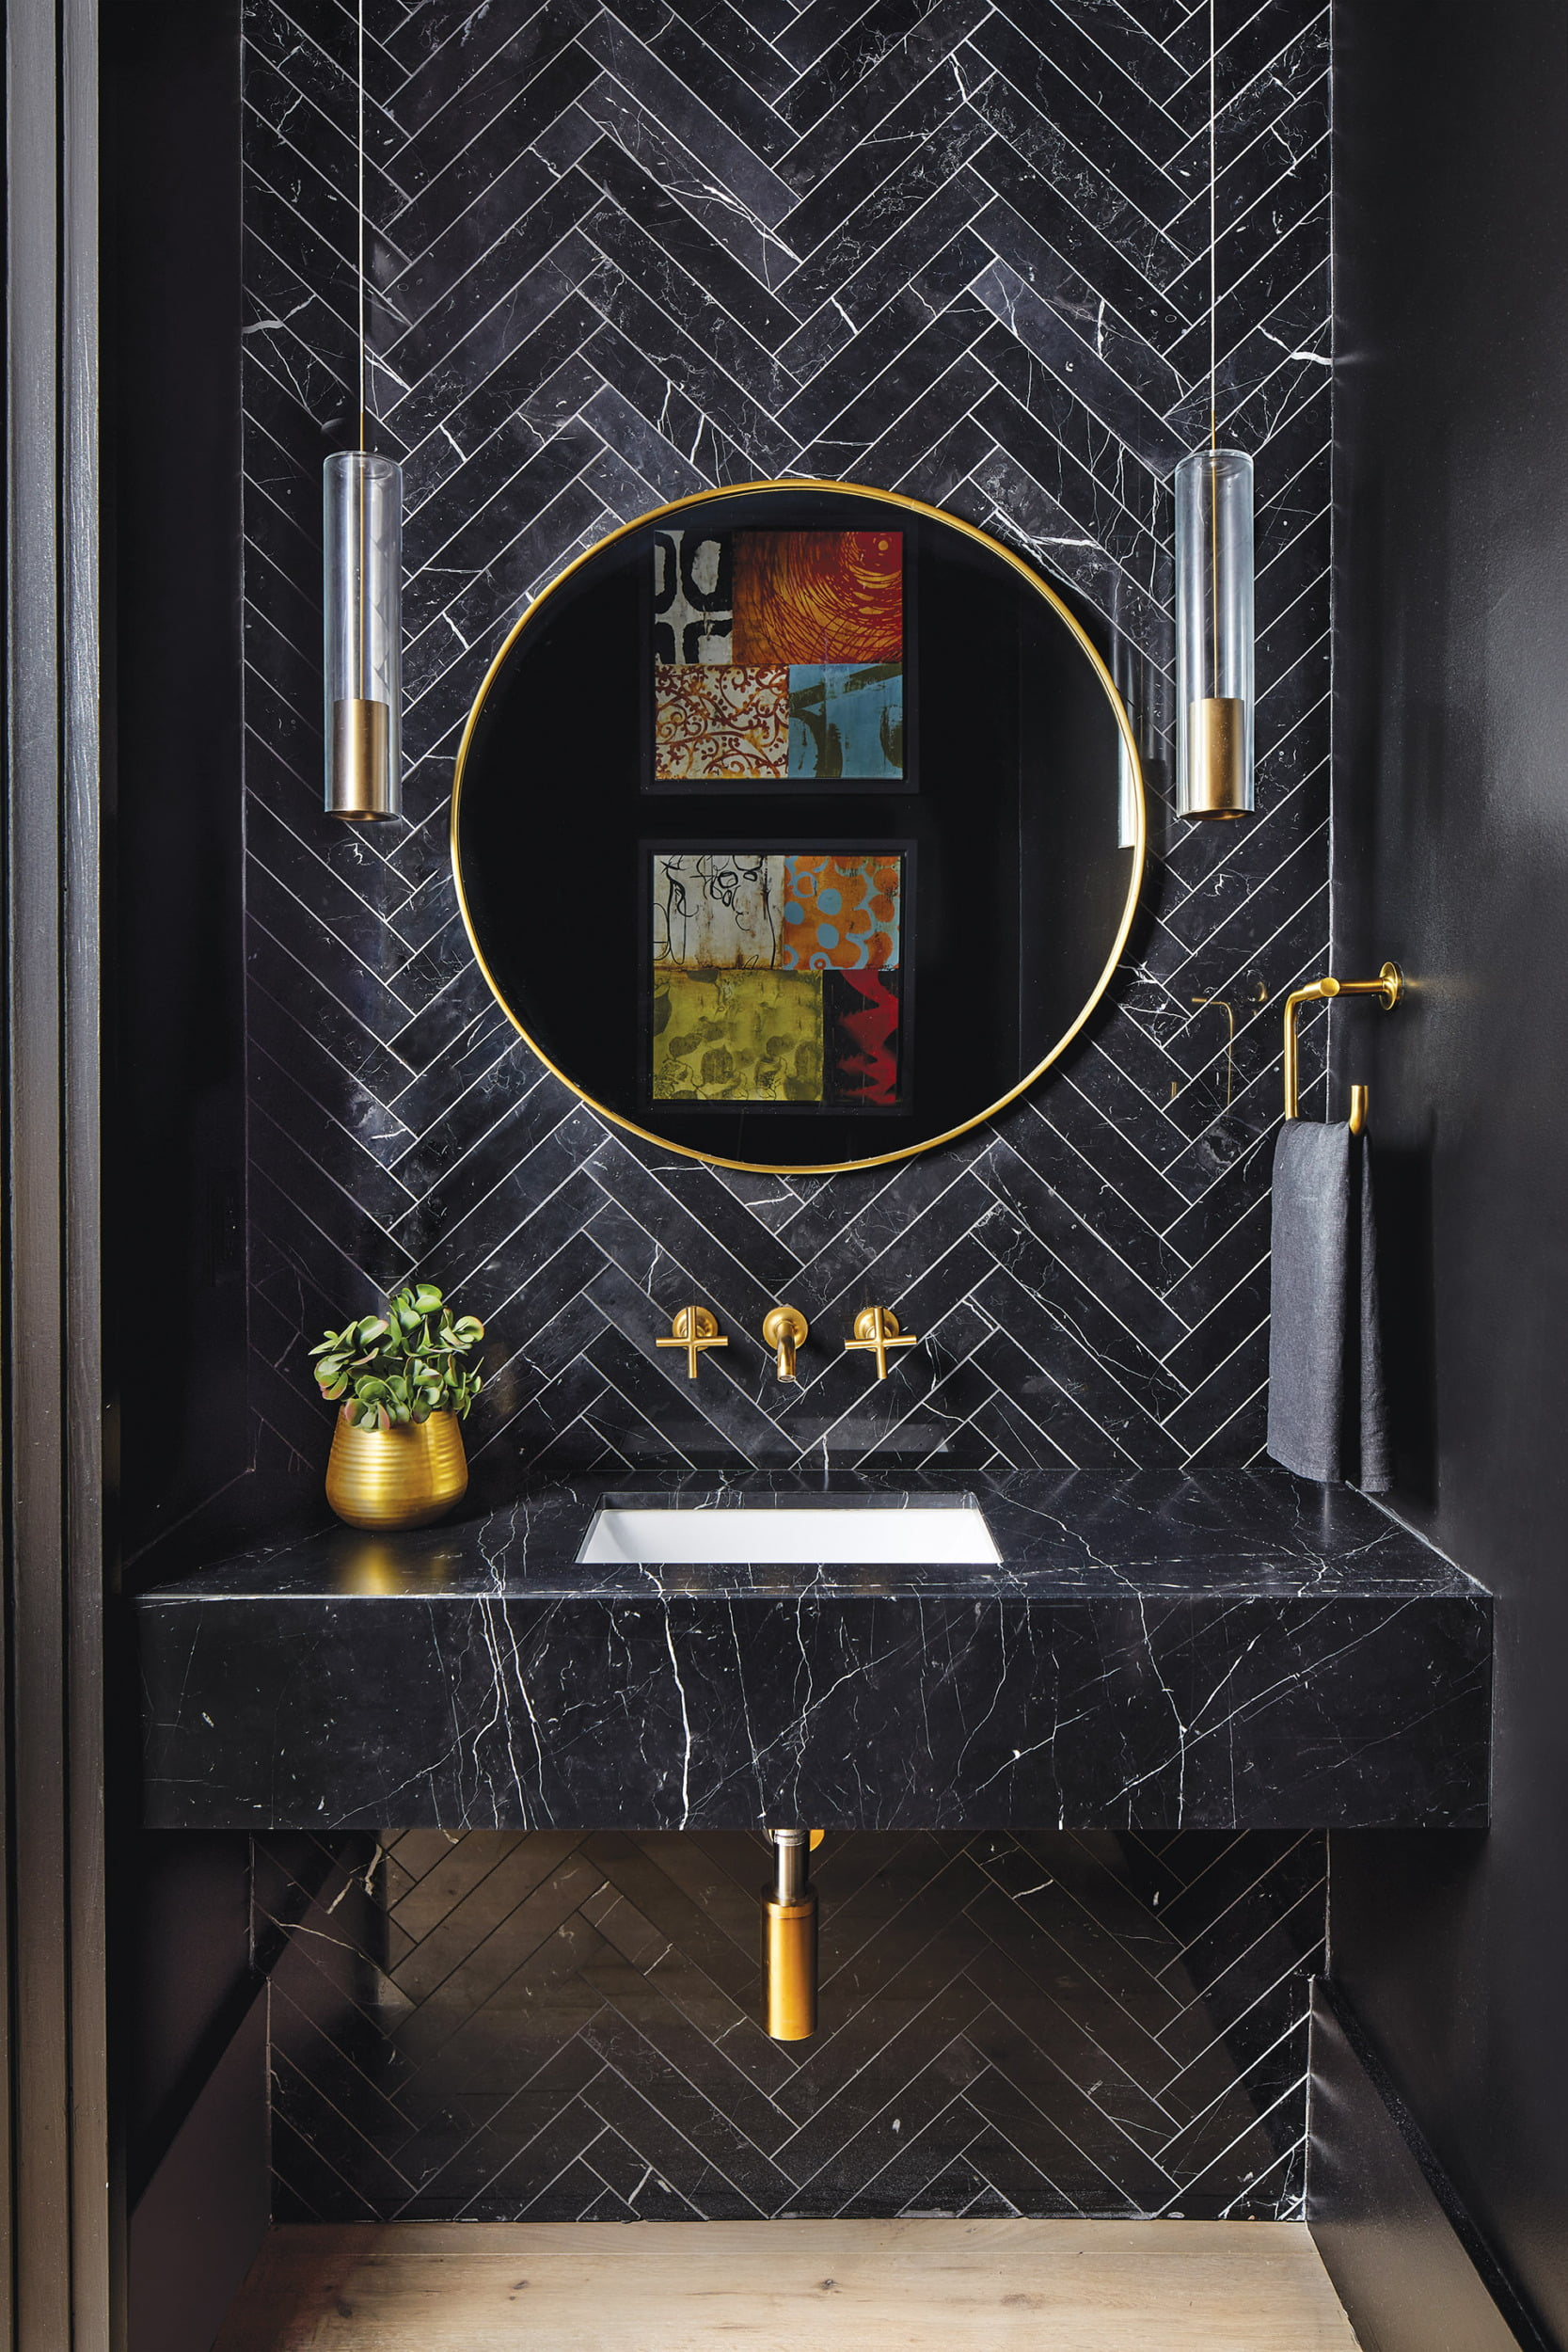 Powder room offsets Nero Marquina marble surfaces with gold accents and RH pendants.